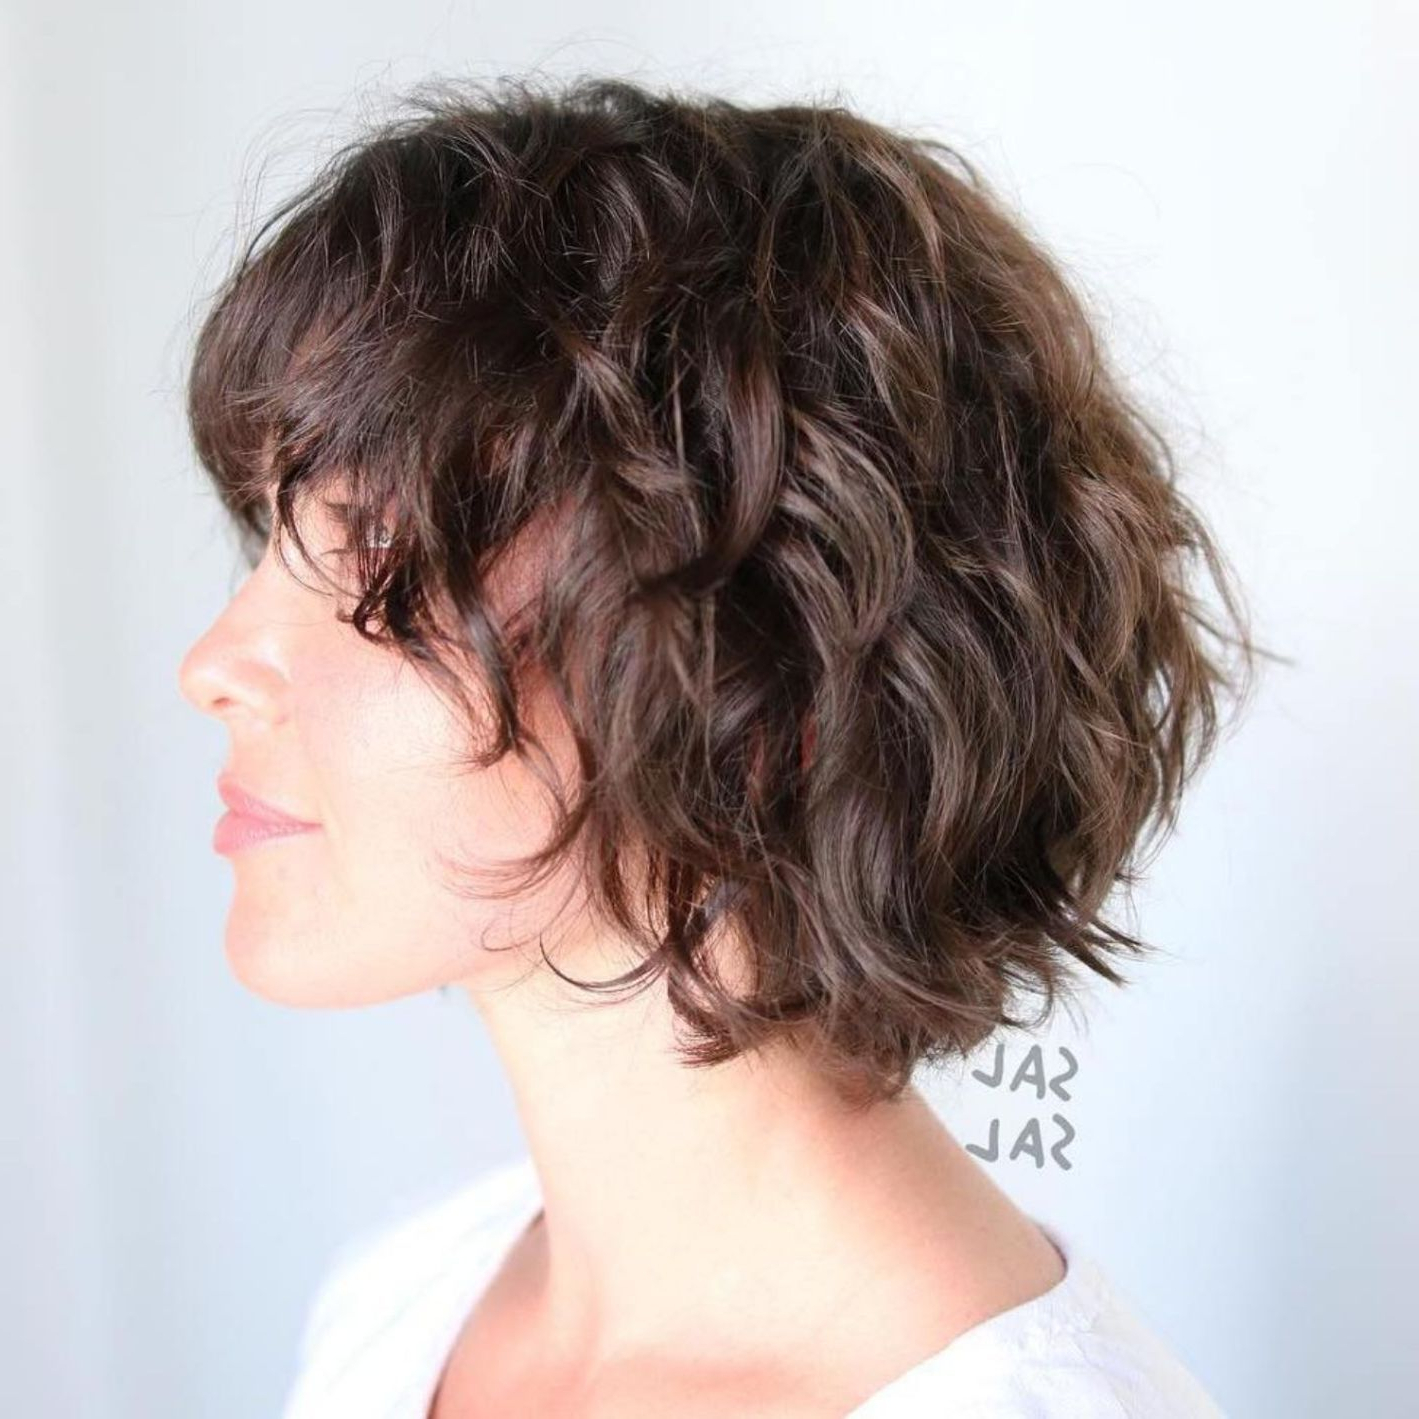 60 Short Shag Hairstyles That You Simply Can't Miss In 2019 With Regard To Textured Curly Bob Haircuts (Gallery 2 of 20)